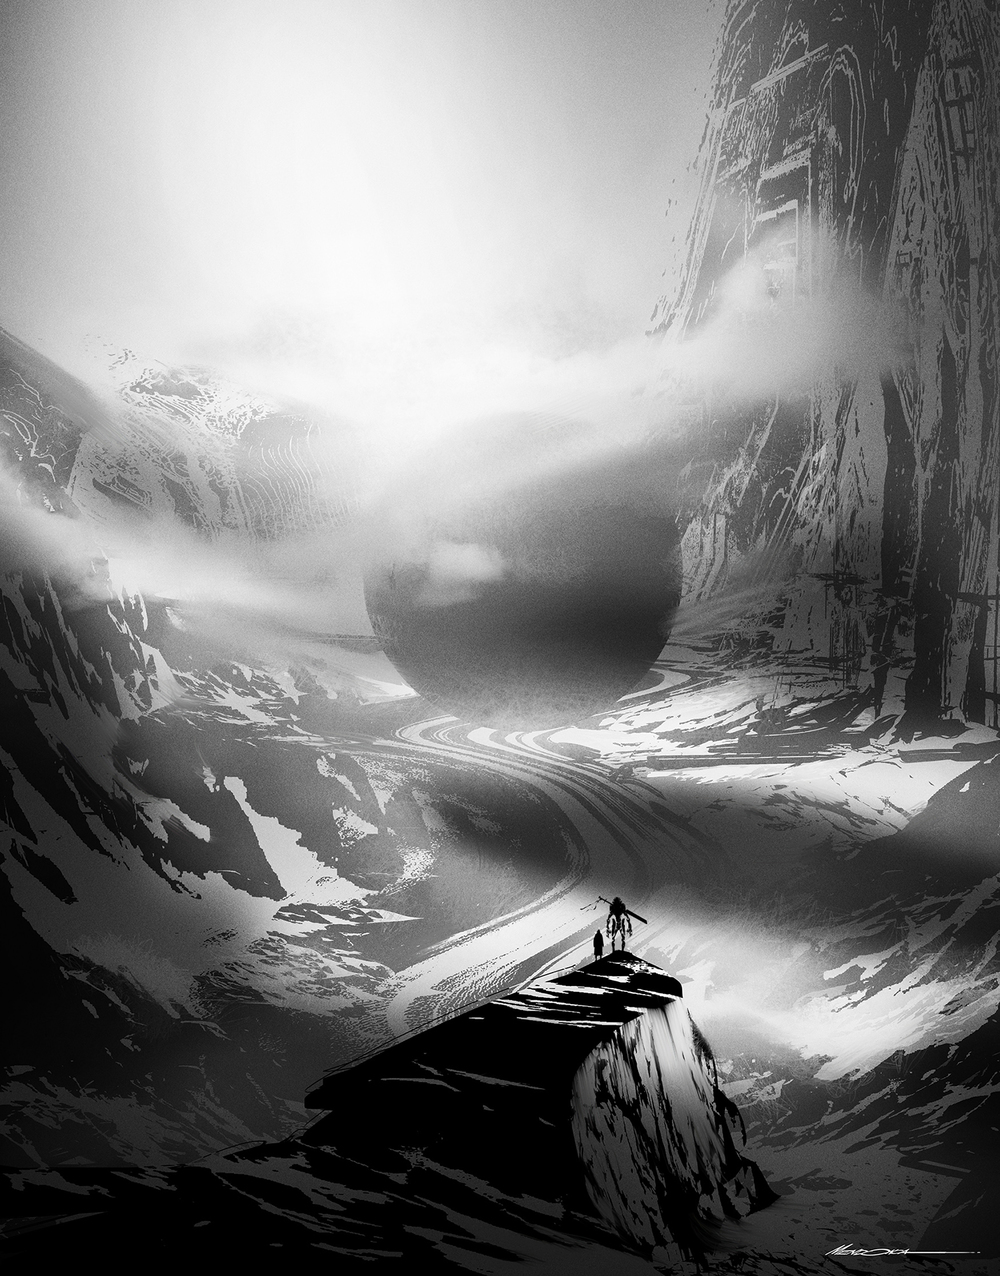 01_GM_Mountaintop_sketch_25m.jpg